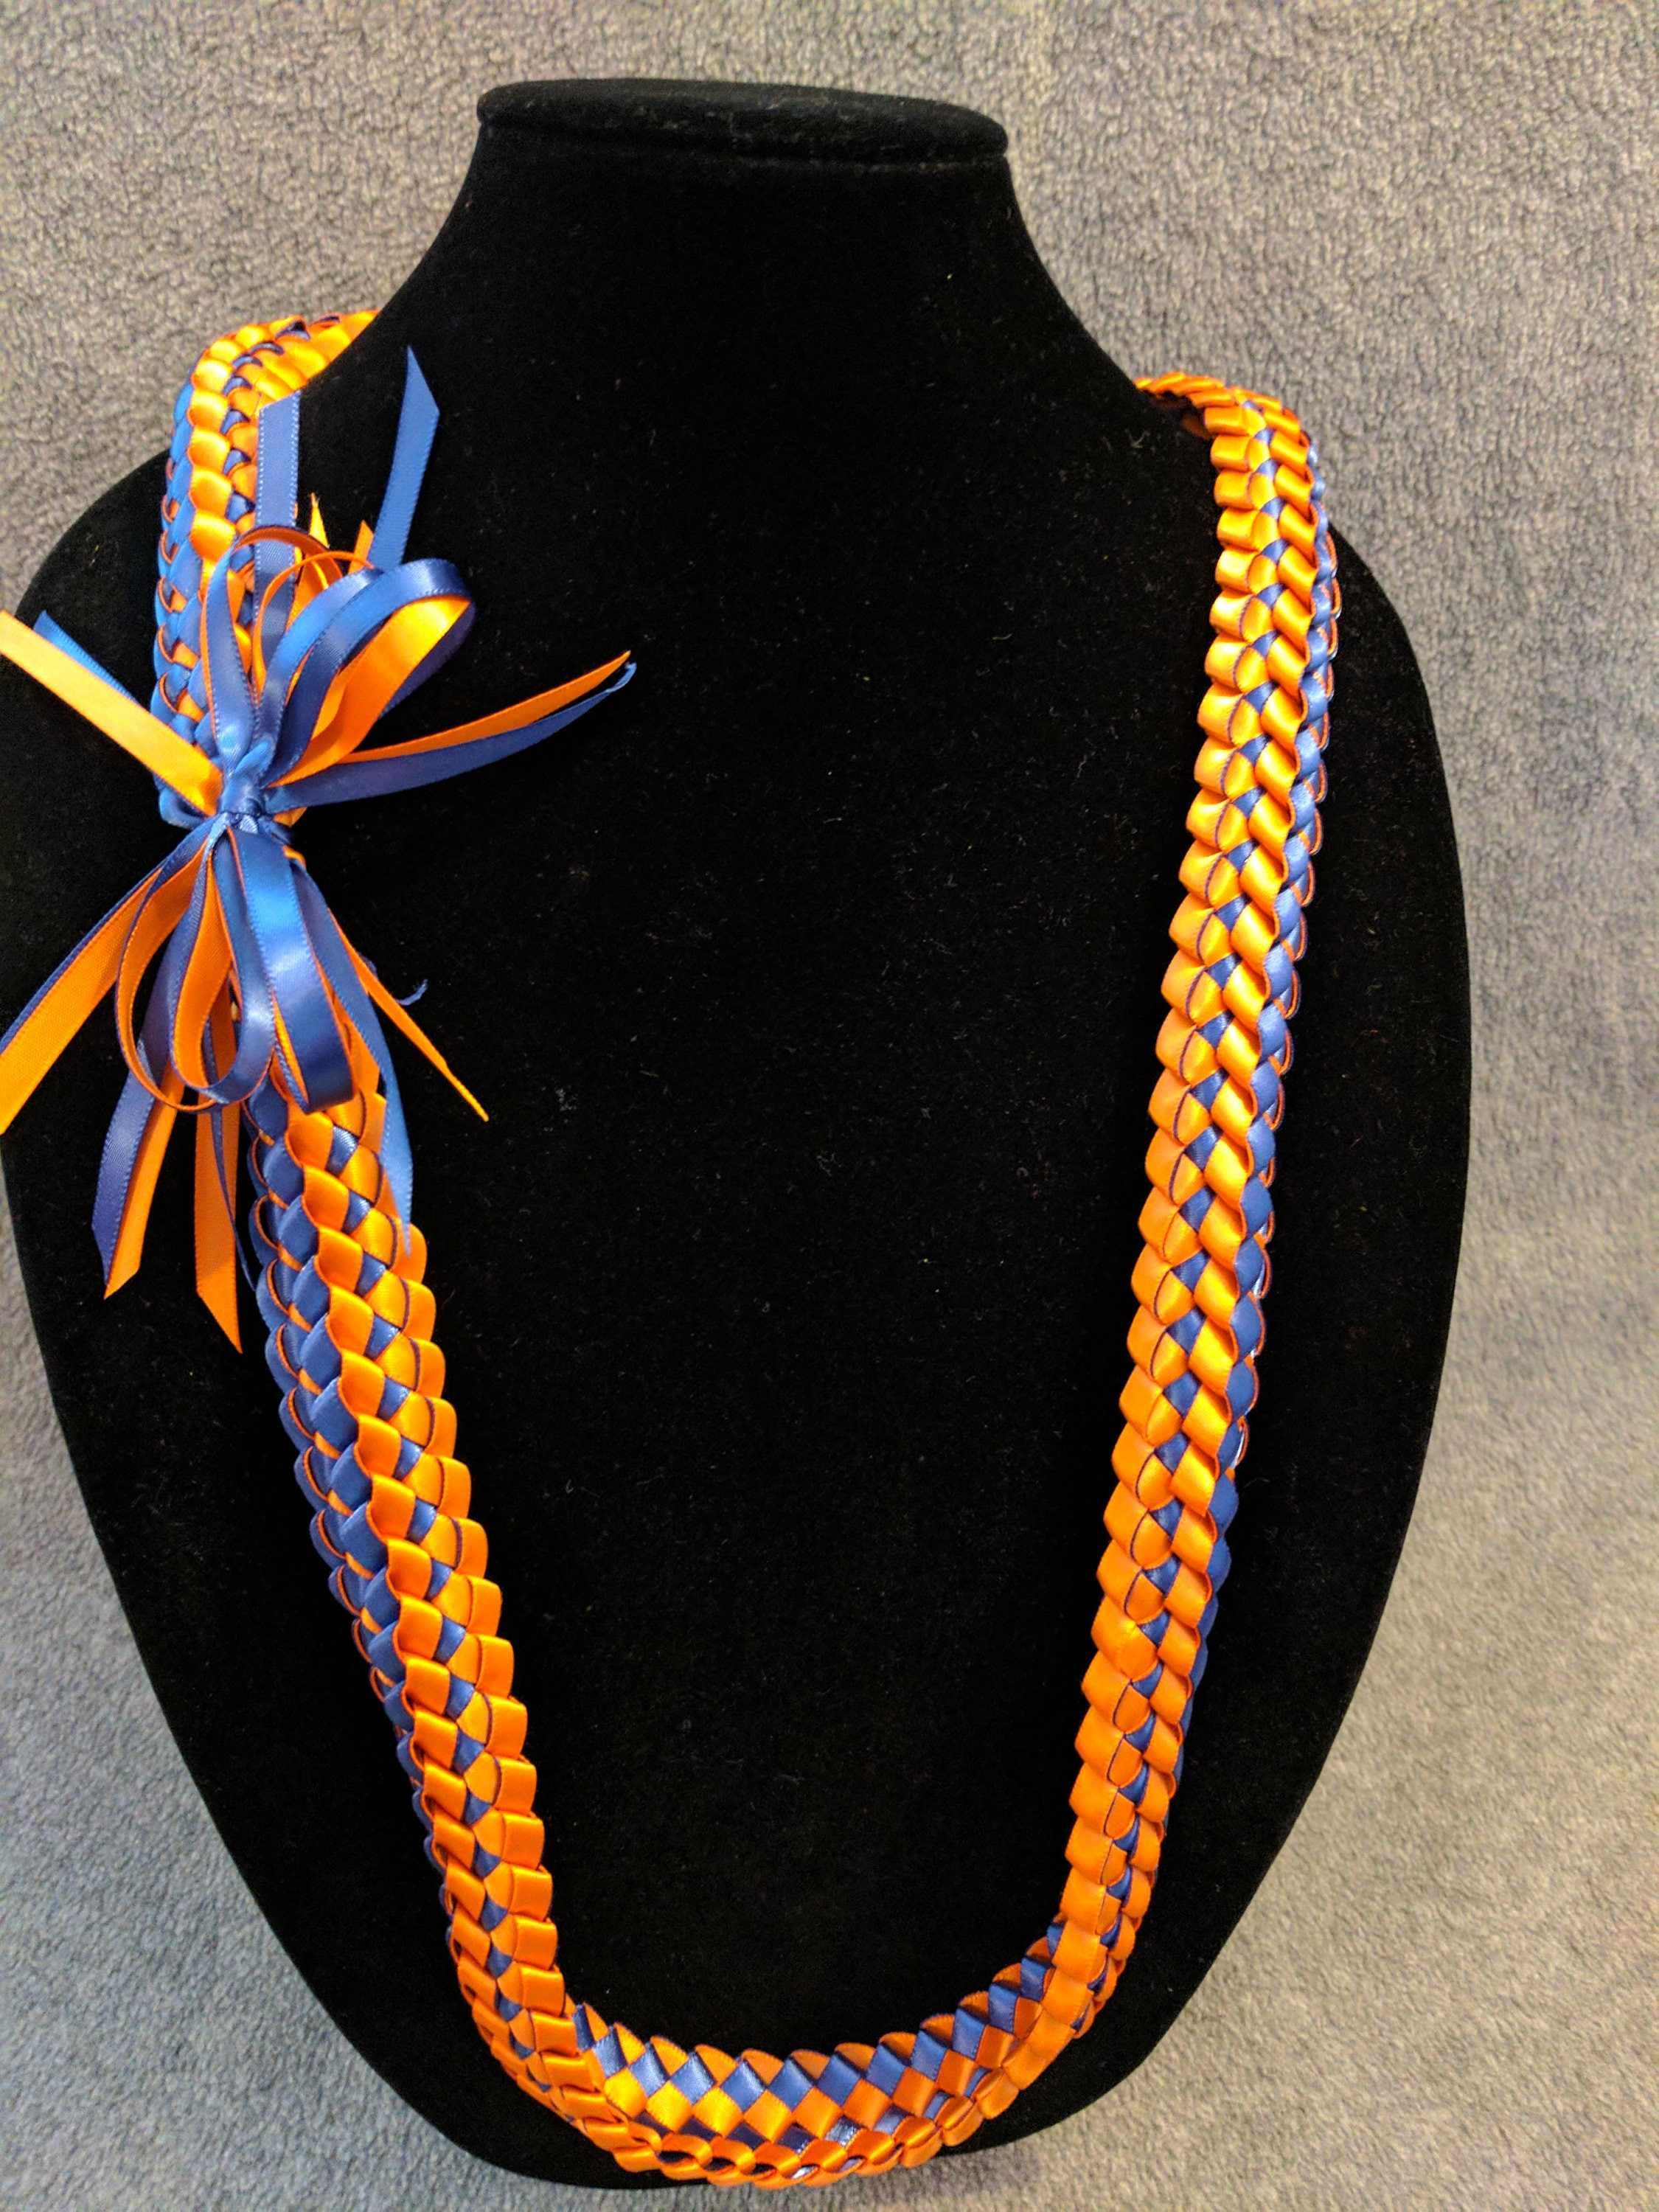 Lei Can Be Made With Construction Paper Yarn Solid: Double Braid Ribbon Lei